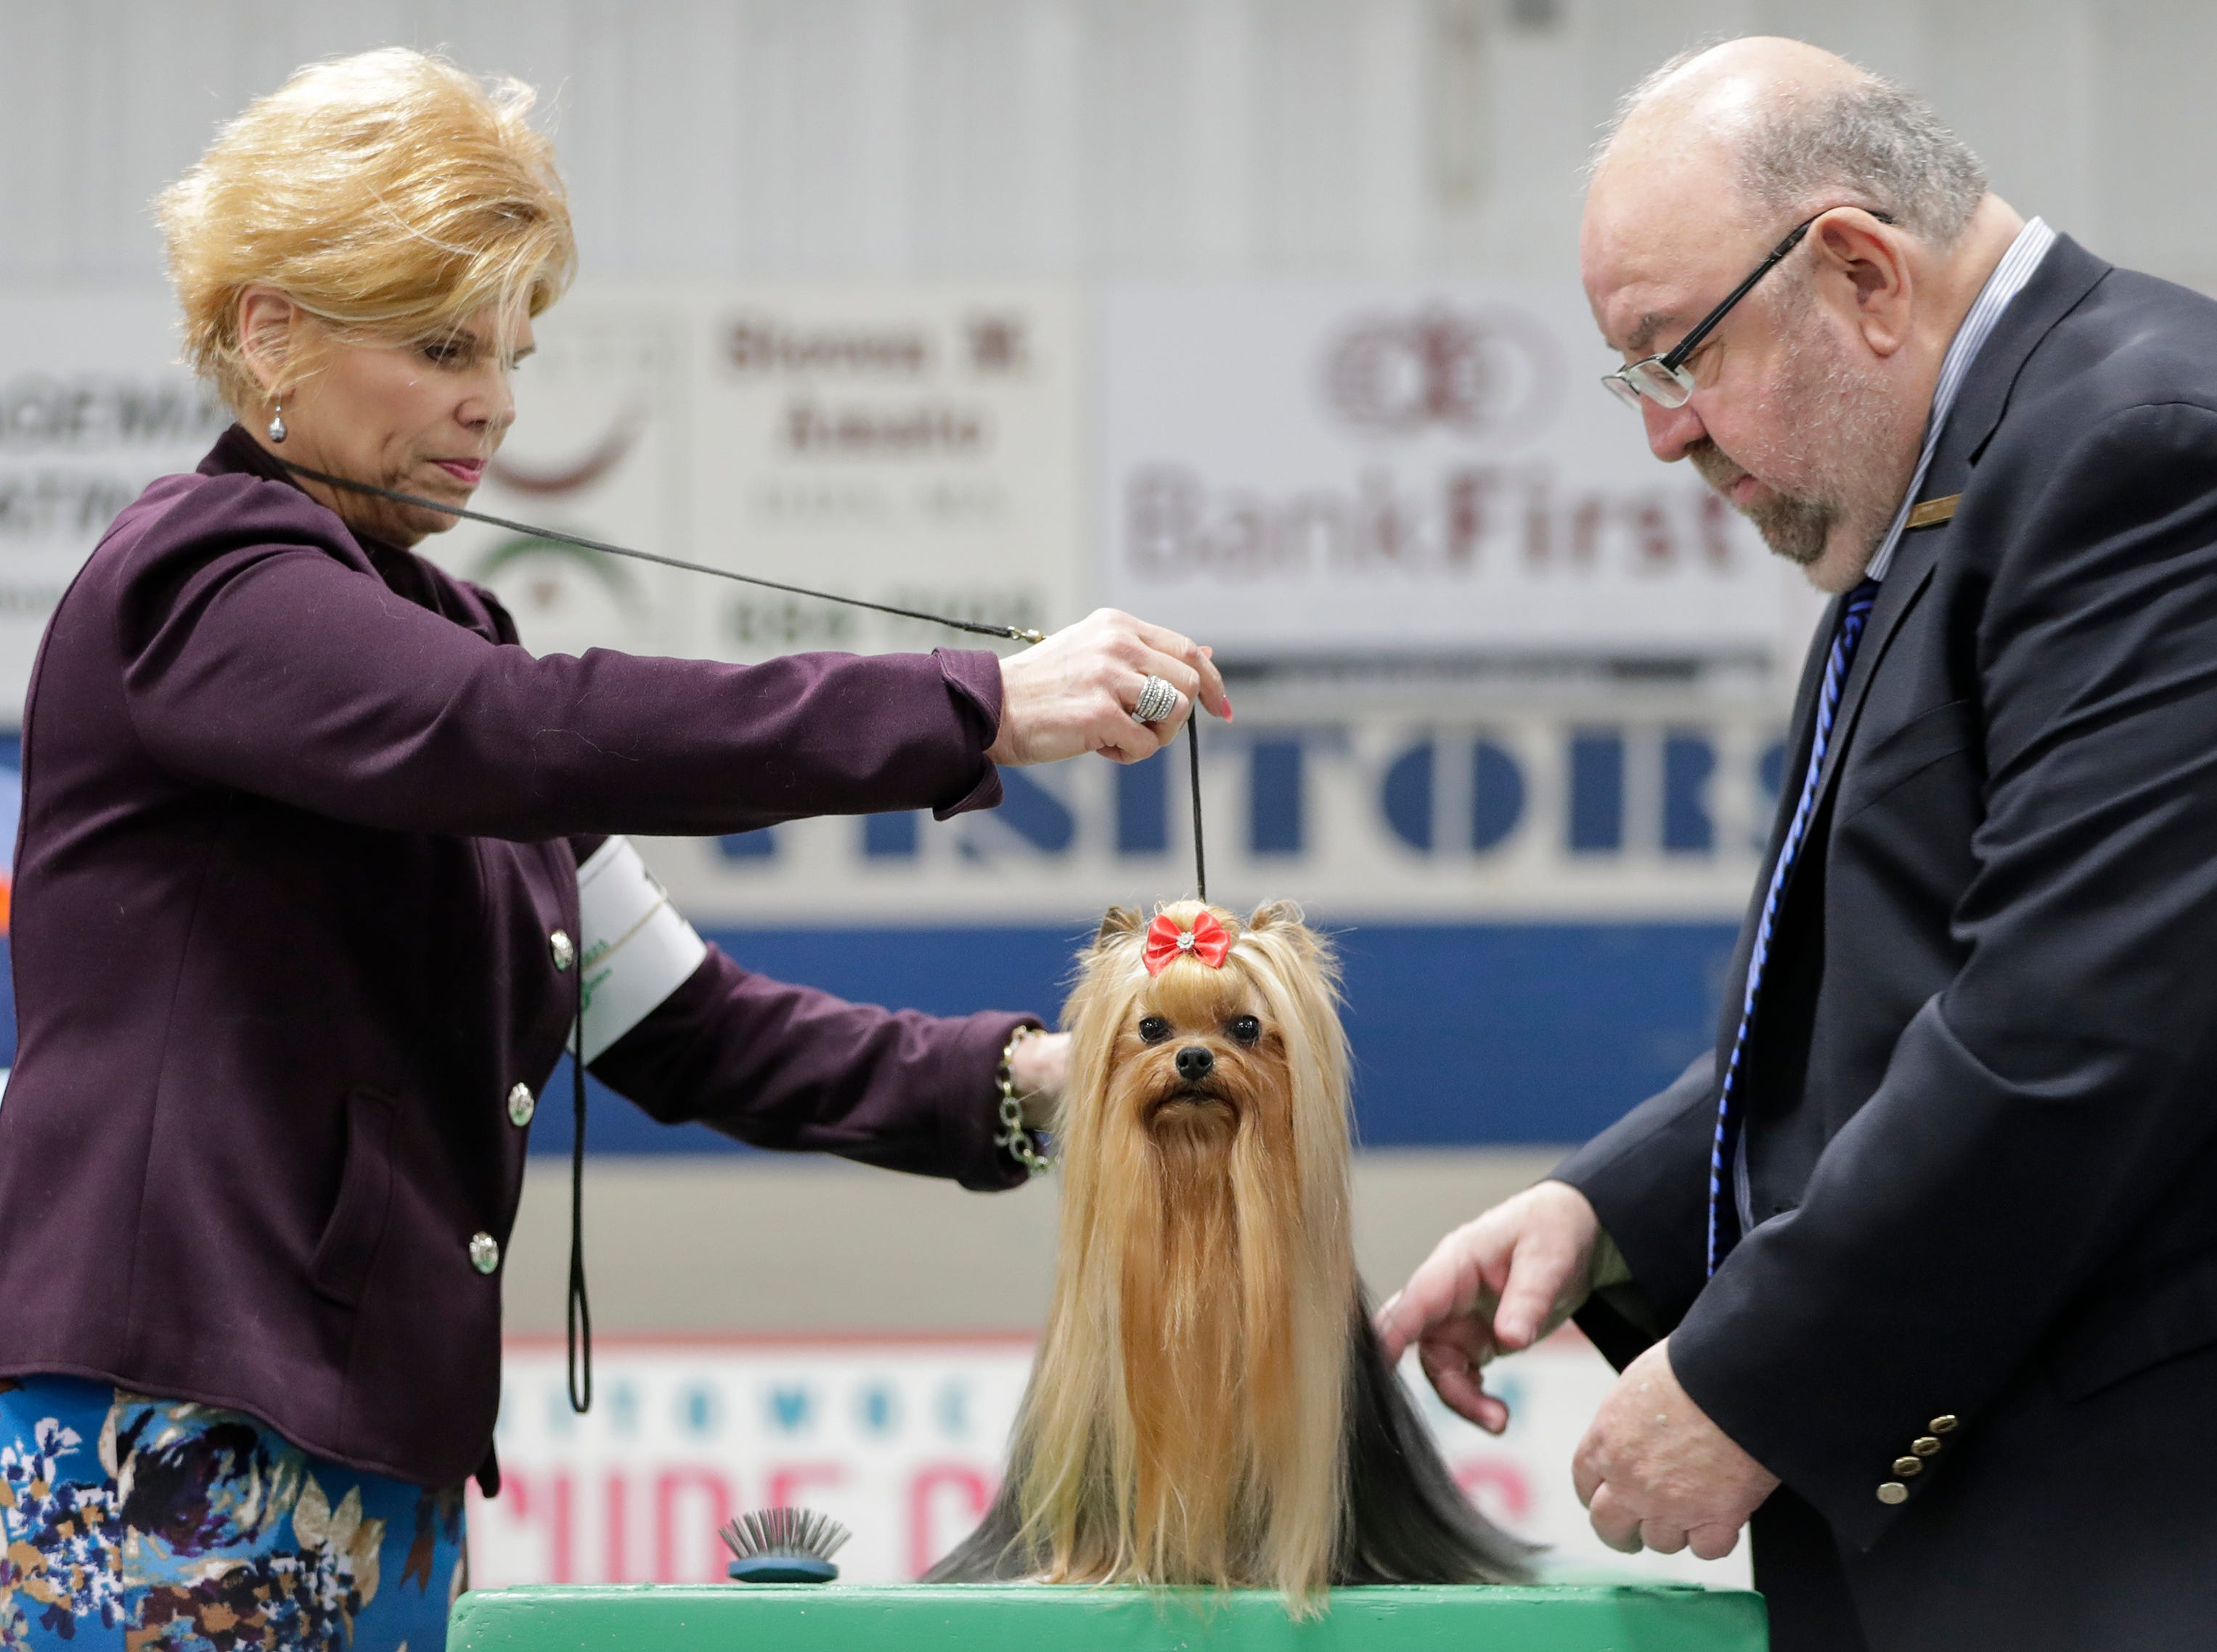 Judge Raymond V. Filburn Jr., right, looks over a Yorkshire terrier during the Northeast Wisconsin Dog Show Classic at the Manitowoc County Expo Center Thursday, March 28, 2019, in Manitowoc, Wis. Joshua Clark/USA TODAY NETWORK-Wisconsin